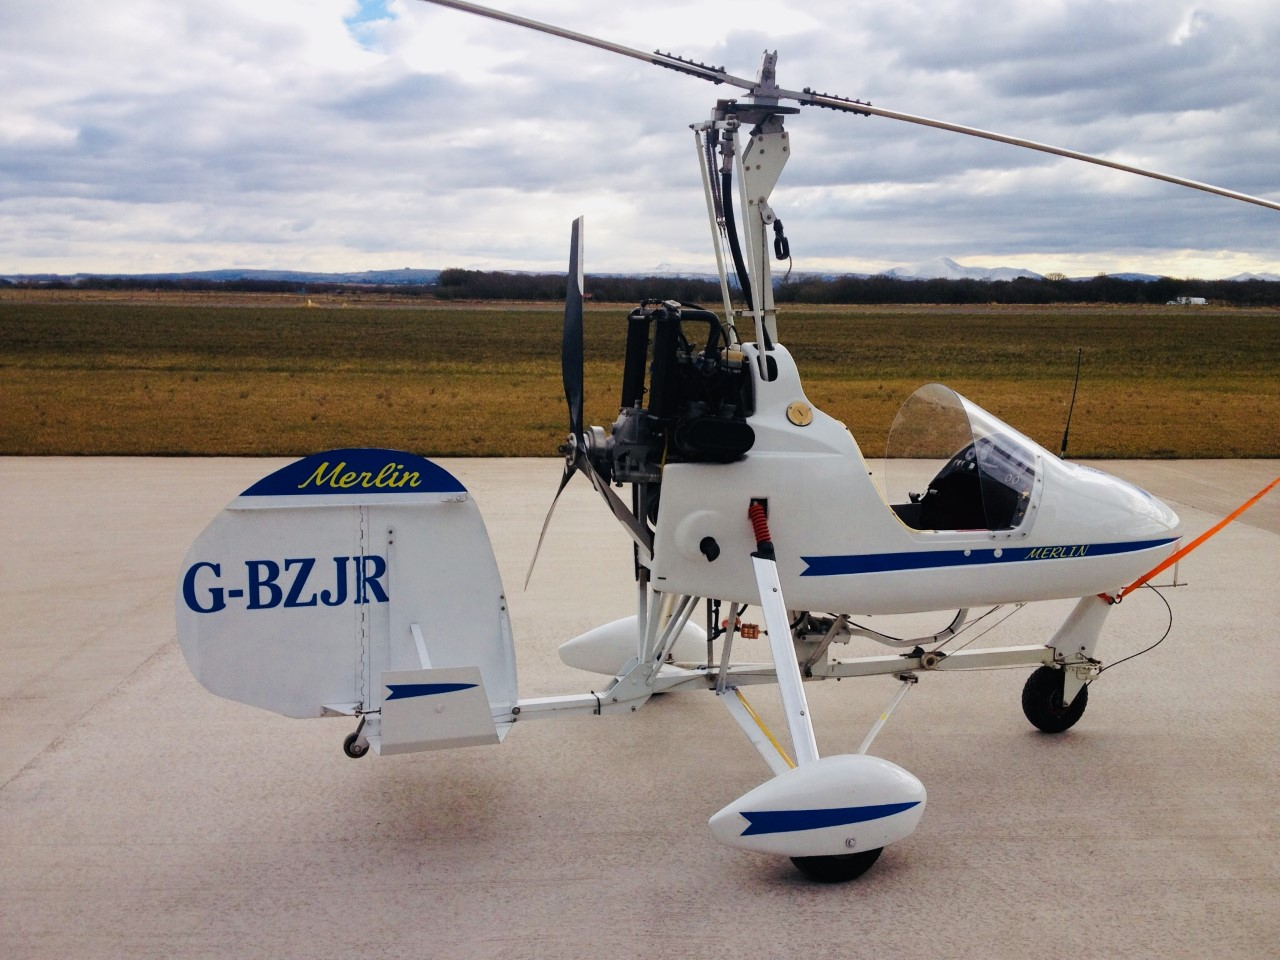 Merlin Montgomery Gyrocopter for Sale | afors advert No42810